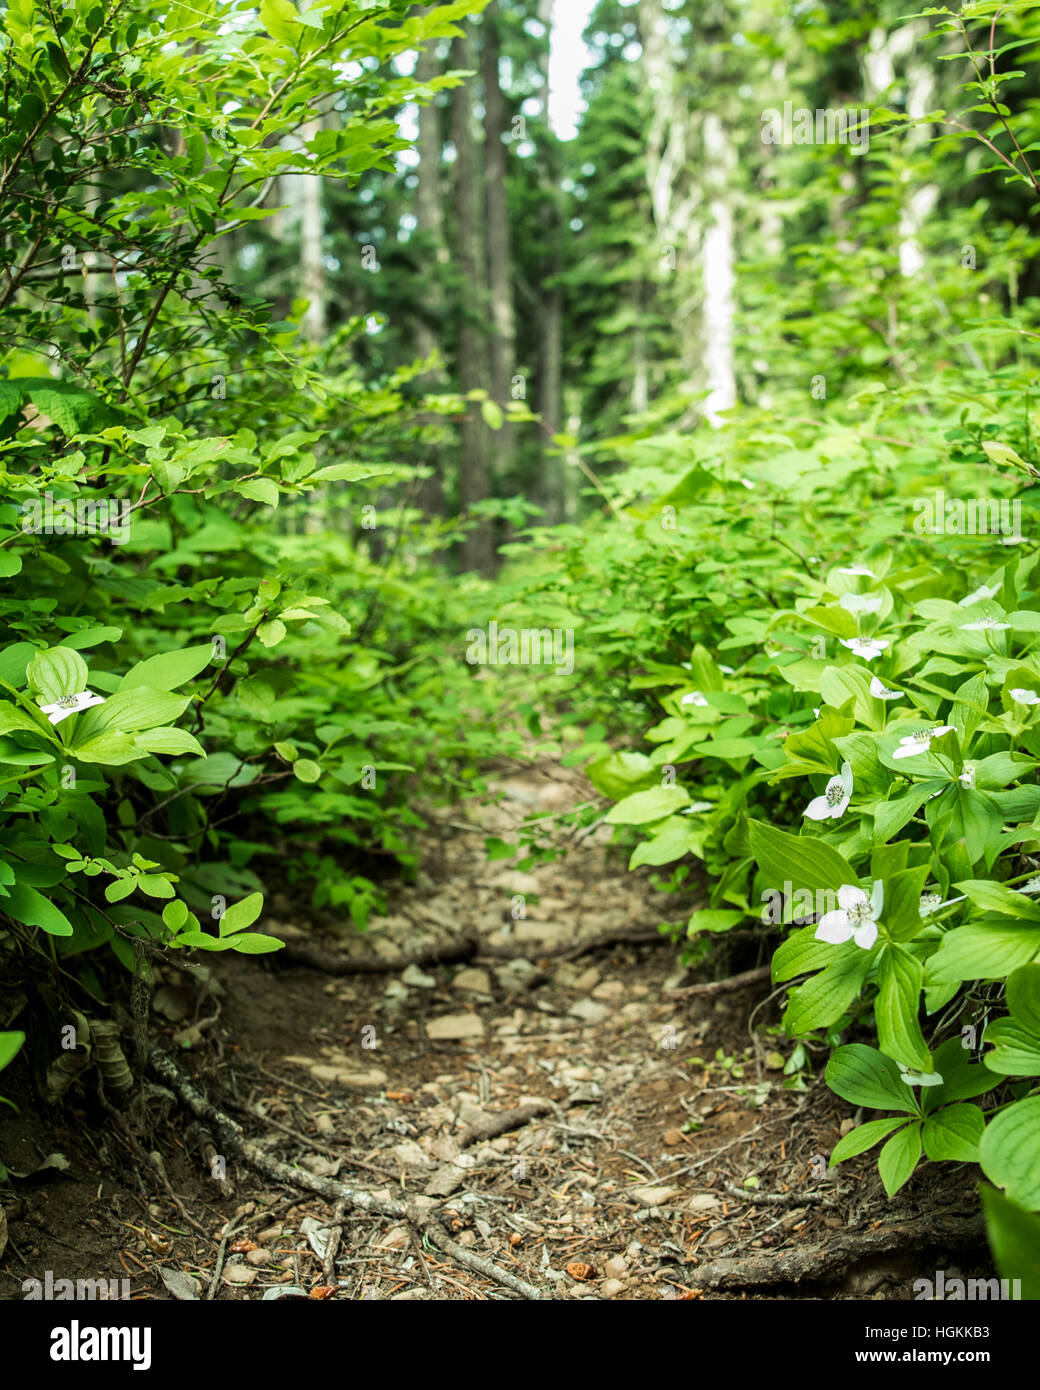 A Small Forest Path Through Green Plants With White Flowers Stock